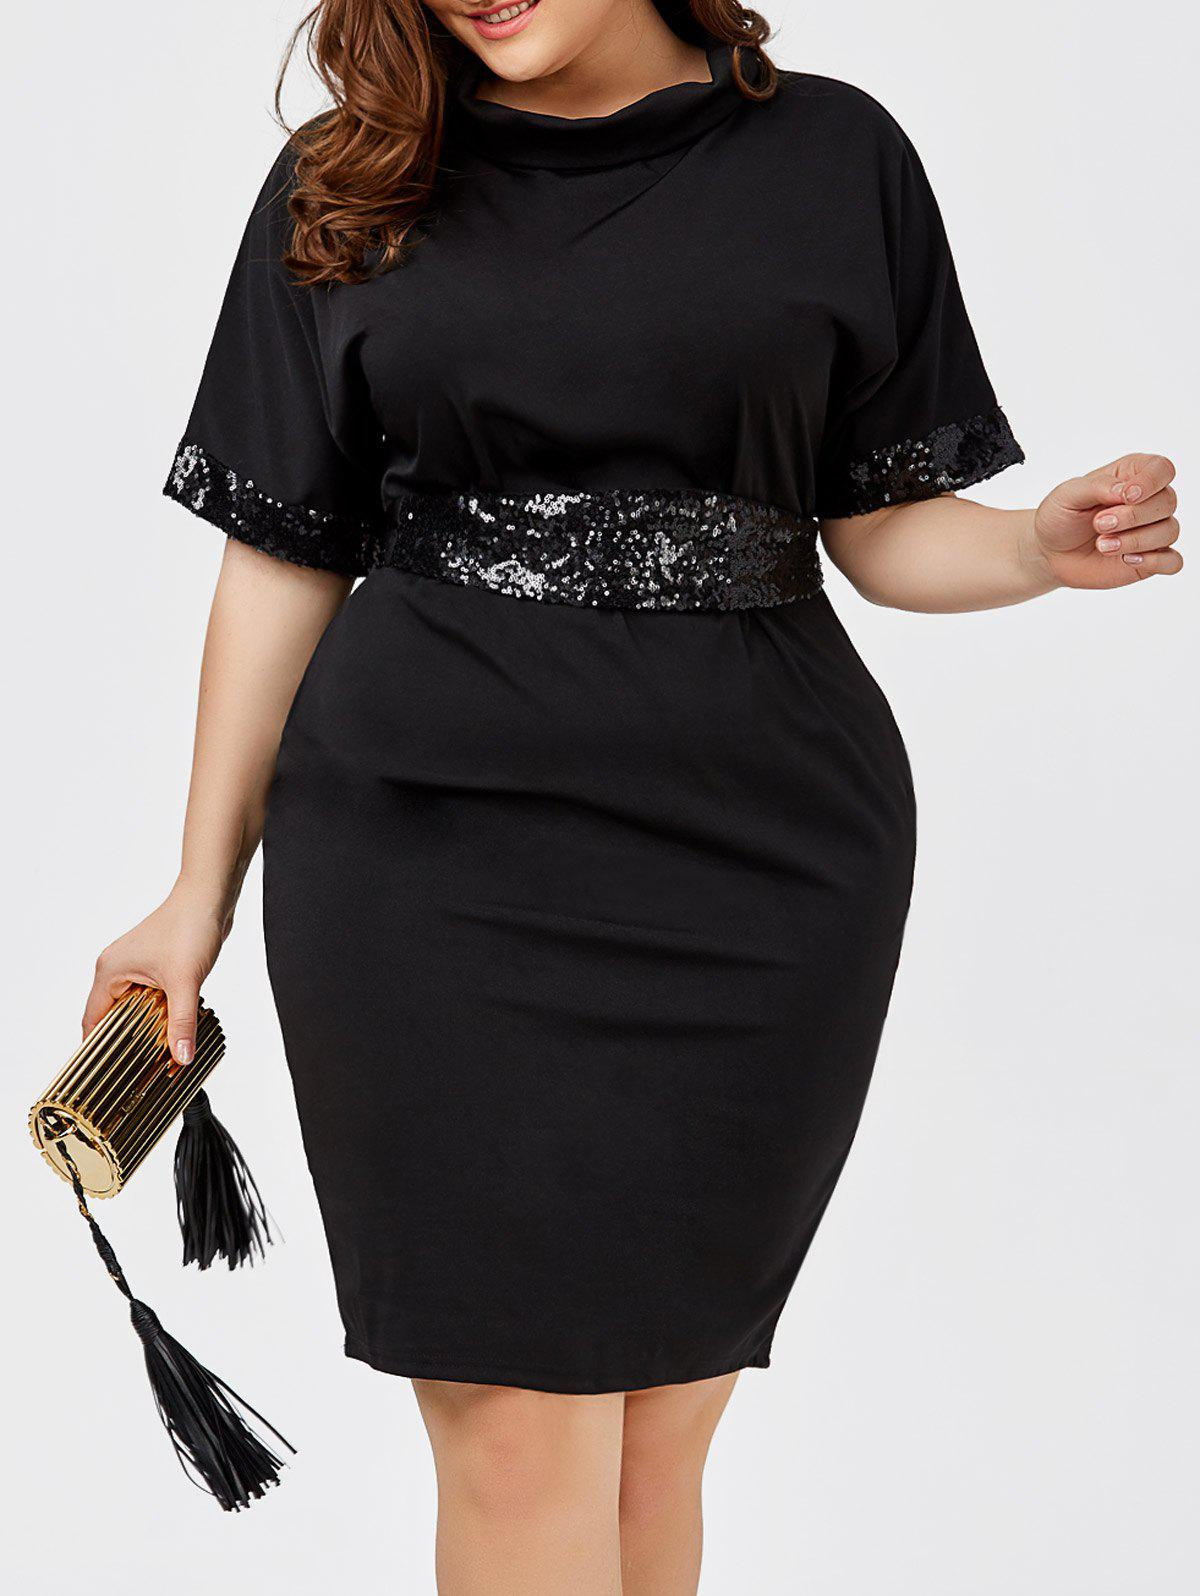 Sequined Belted Plus Size Sheath DressWOMEN<br><br>Size: 2XL; Color: BLACK; Style: Casual; Material: Cotton Blend,Polyester; Silhouette: Sheath; Dresses Length: Knee-Length; Neckline: Turtleneck; Sleeve Length: Short Sleeves; Embellishment: Sequins; Pattern Type: Solid; With Belt: Yes; Season: Spring,Summer; Weight: 0.4300kg; Package Contents: 1 x Dress  1 x Belt;